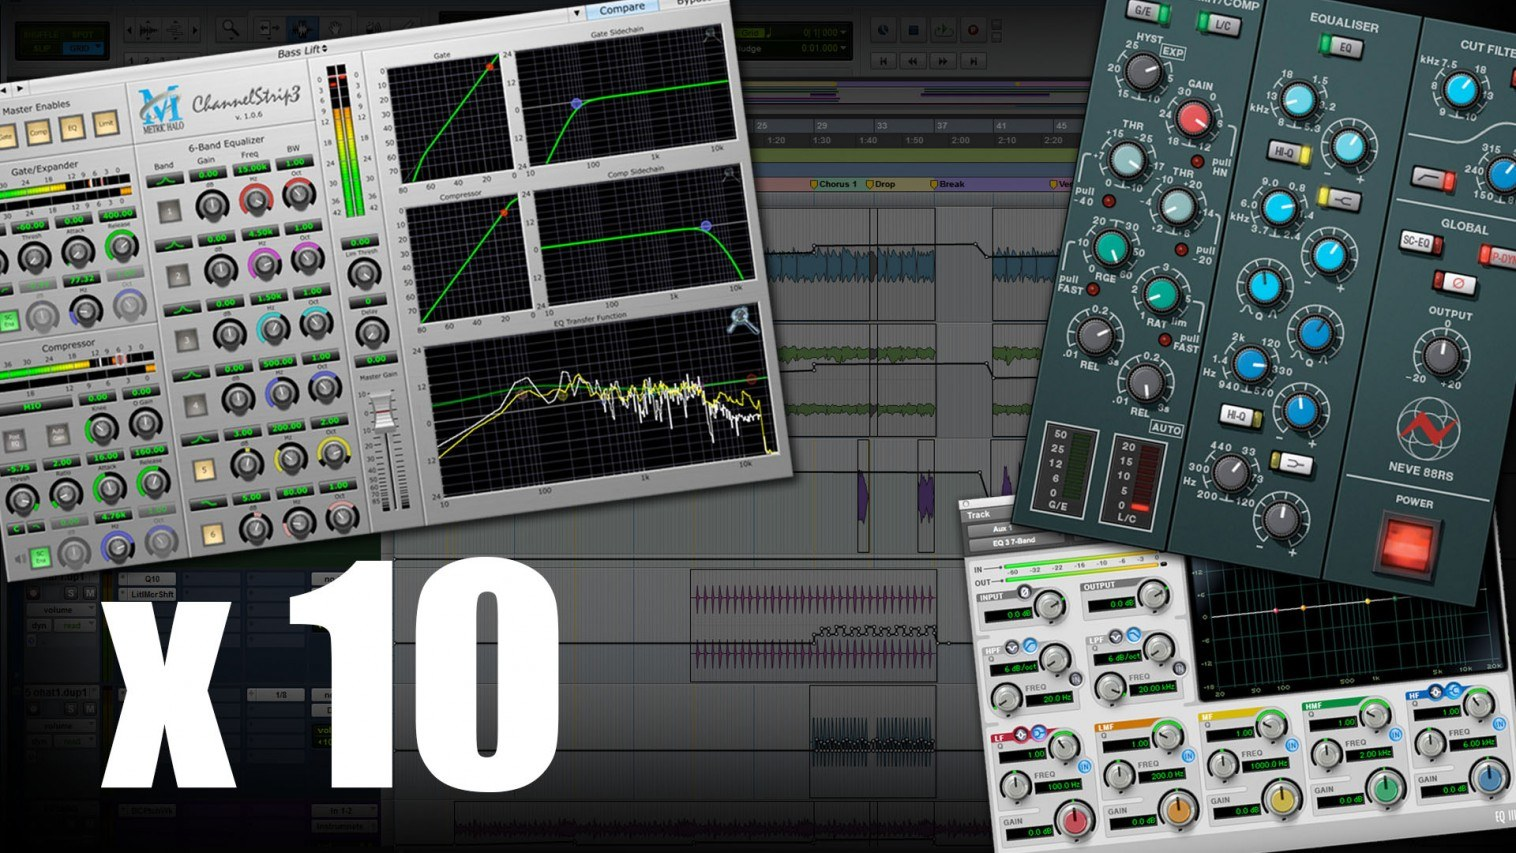 10 Pro Mixing Engineers Discuss Their Favourite In-The-Box Equalizers